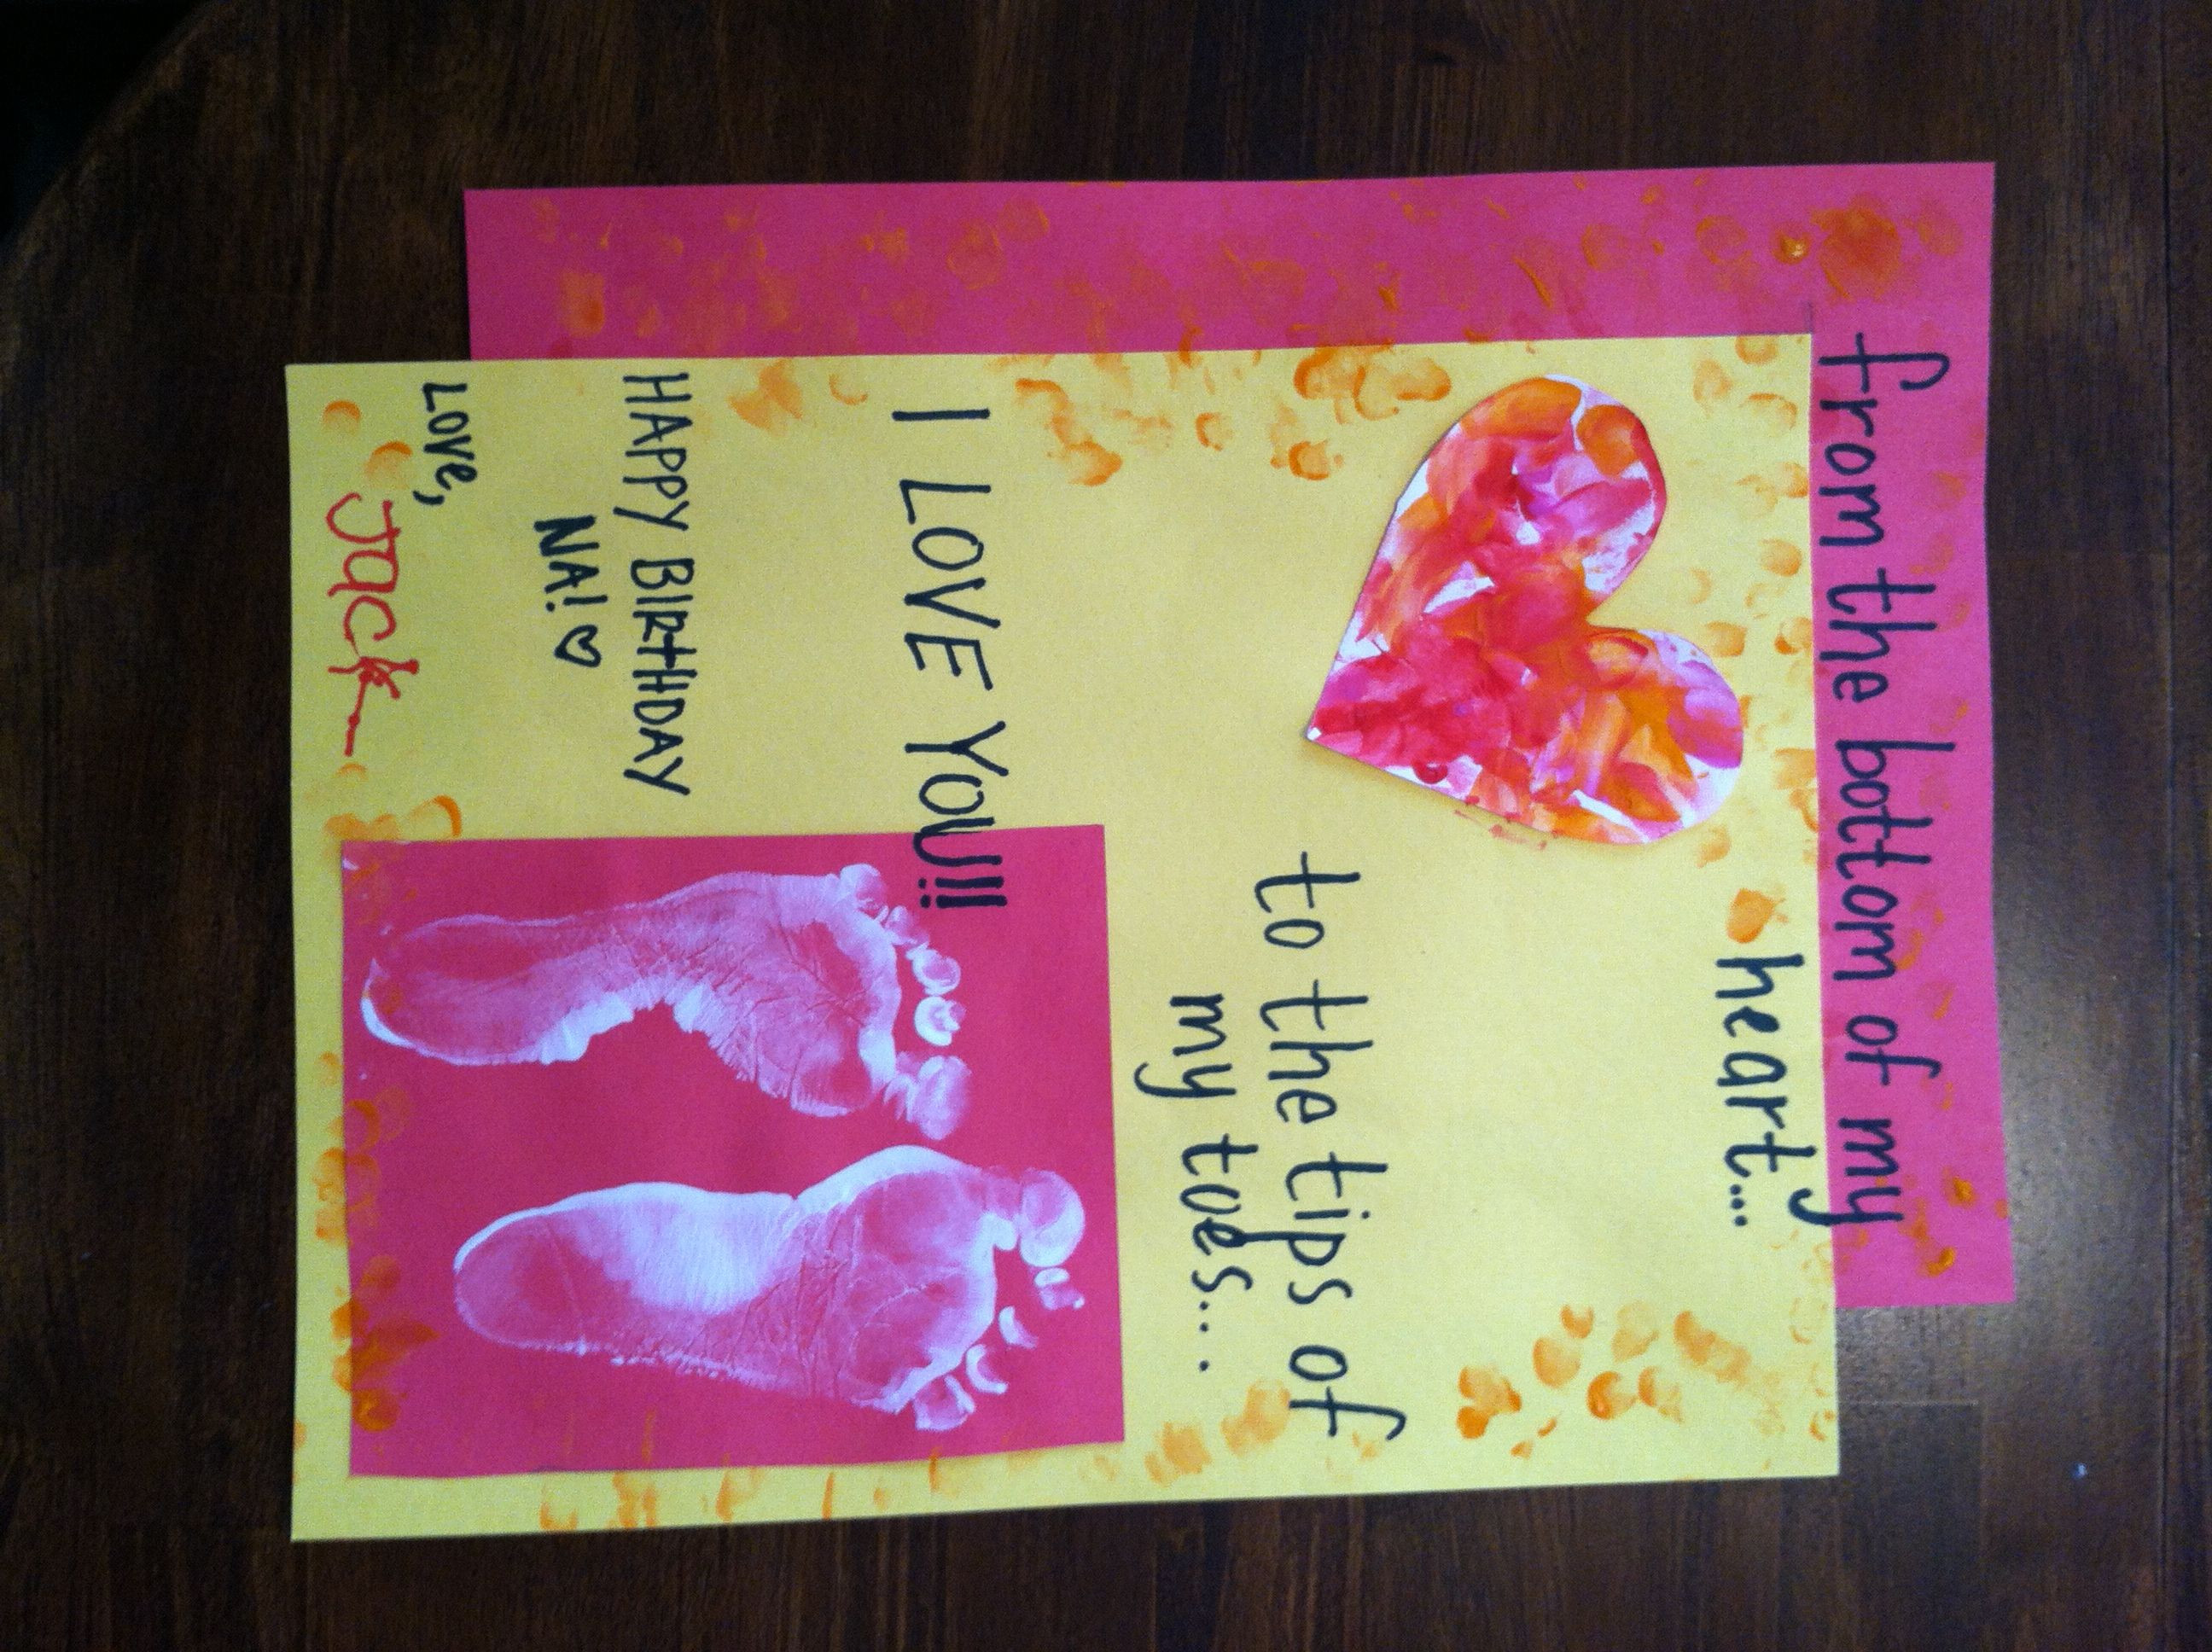 Best ideas about Homemade Birthday Gifts For Grandma . Save or Pin Birthday card for Grandma Now.